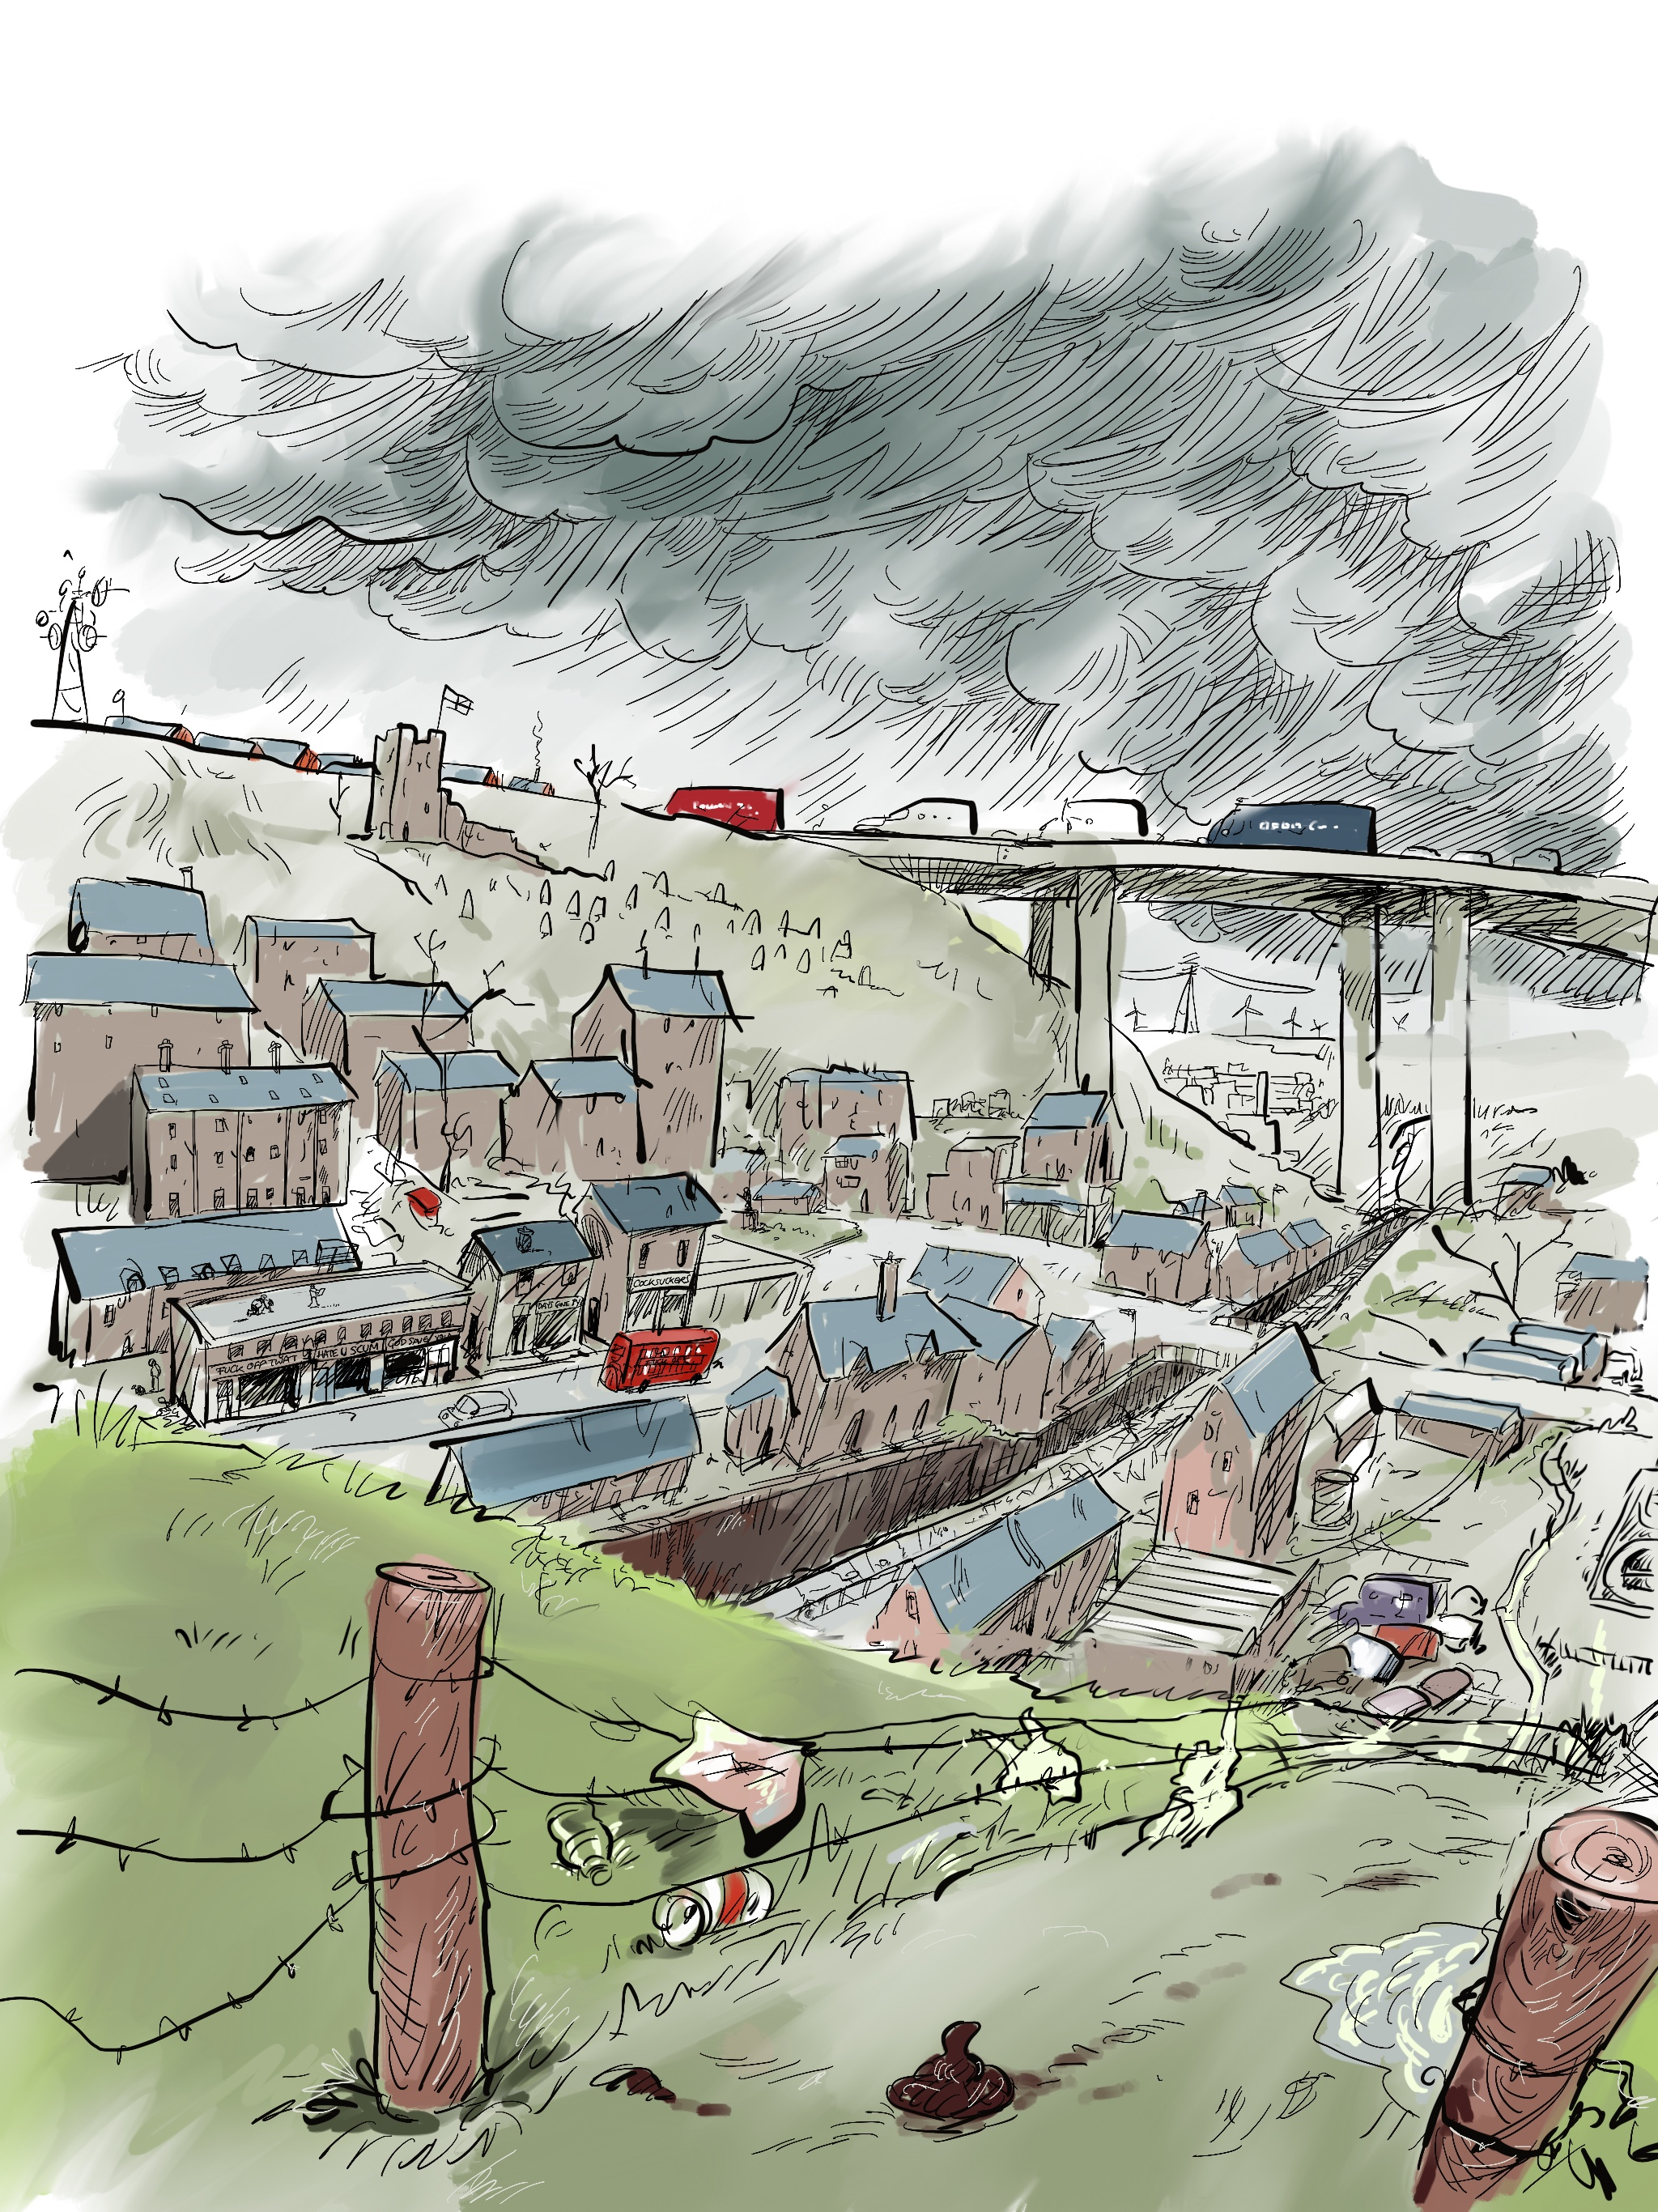 A sketch of a mythical English small town